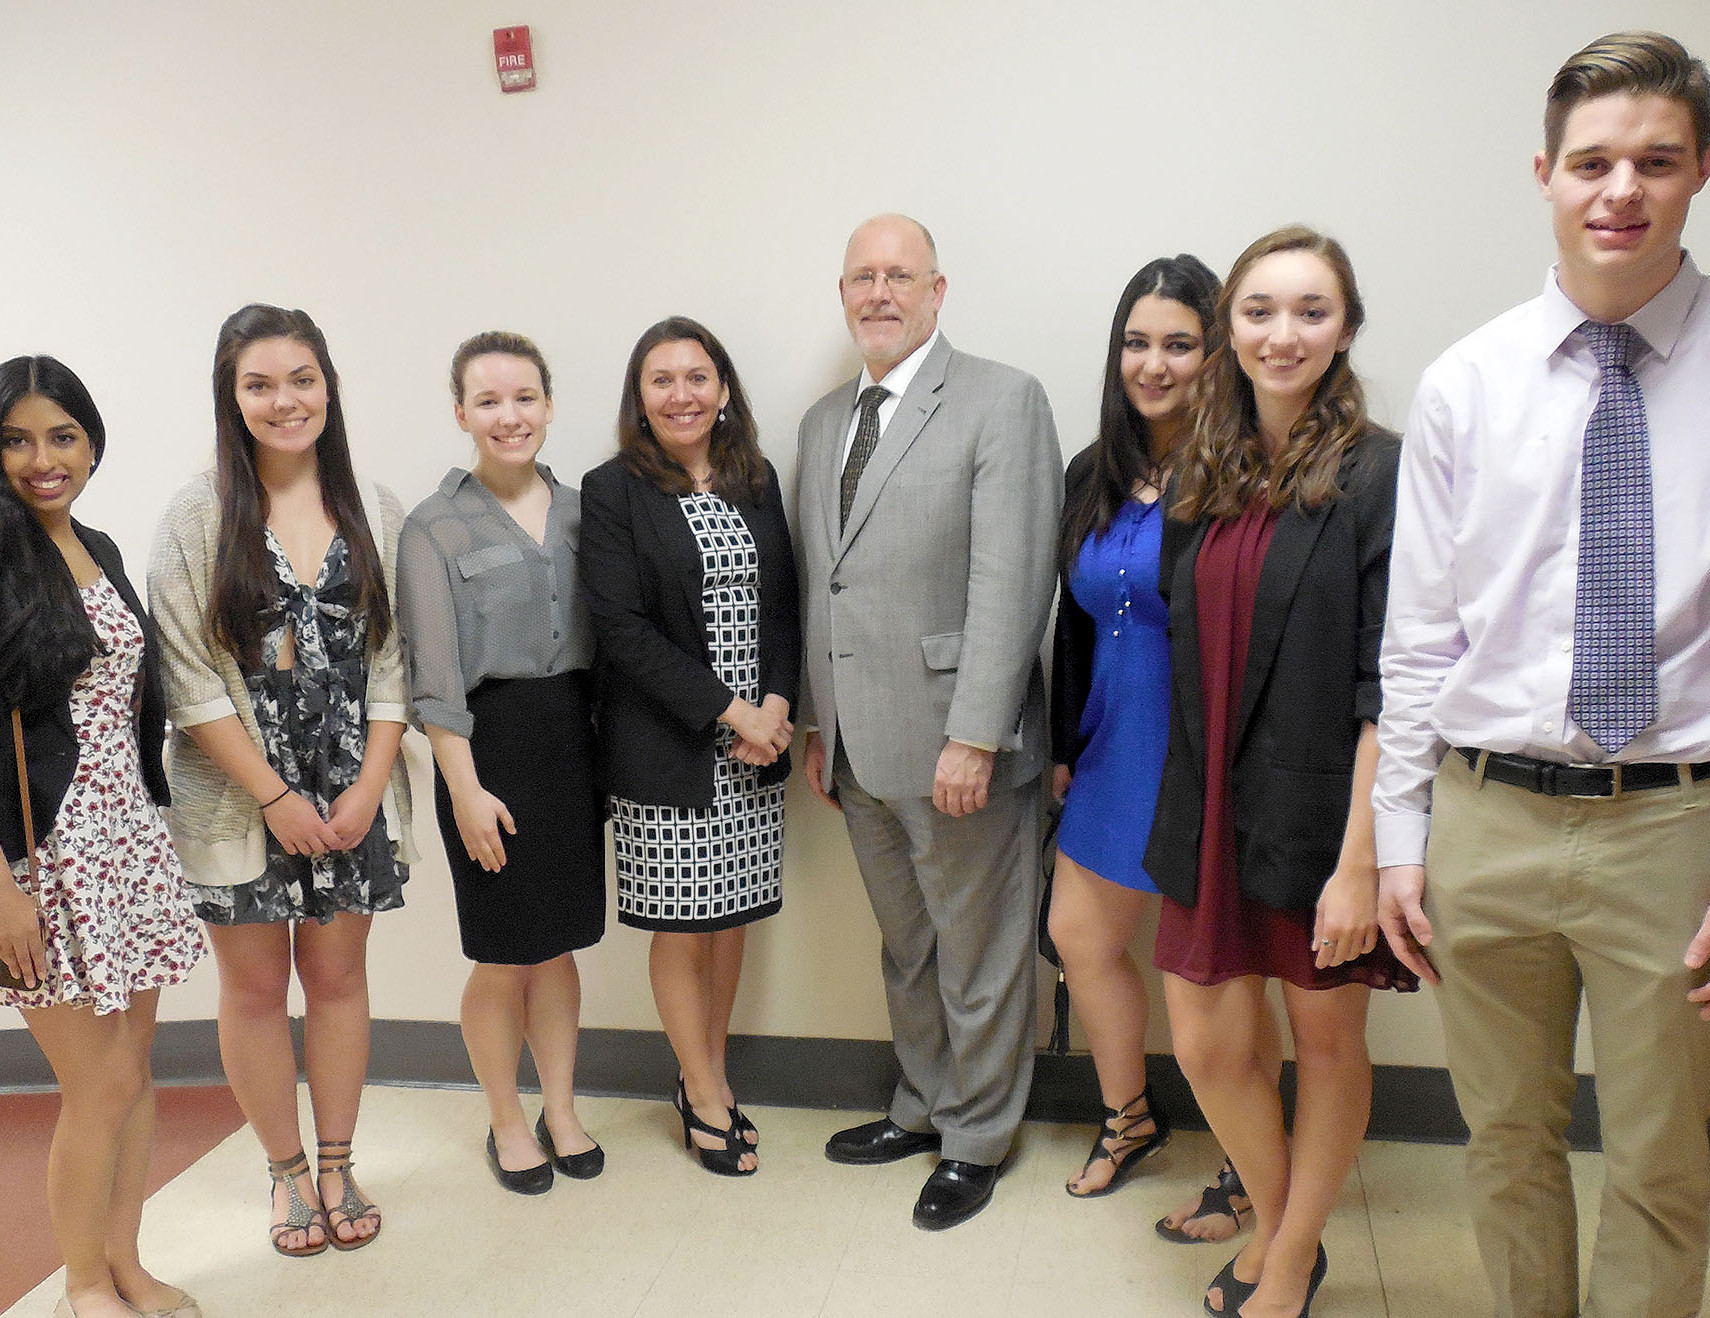 (above) Standing on either  side of guest speaker Amanda Seewald, fourth left, president of the Foreign Language Educators of New Jersey, and Brad Commerford, supervisor of World Languages at WHRHS, are students (l-r) Senior Anjali J. Patel of Warren Township; senior Olena Alexandra Hadlet of Millington; junior Arielle Ostry of Green Brook Township; junior Sonali Howe of Green Brook Township; senior Jenna Charko of Warren; and senior Lukas Ihringer of Gillette. Sonali Howe, was inducted into two language honor societies, Latin and Spanish.